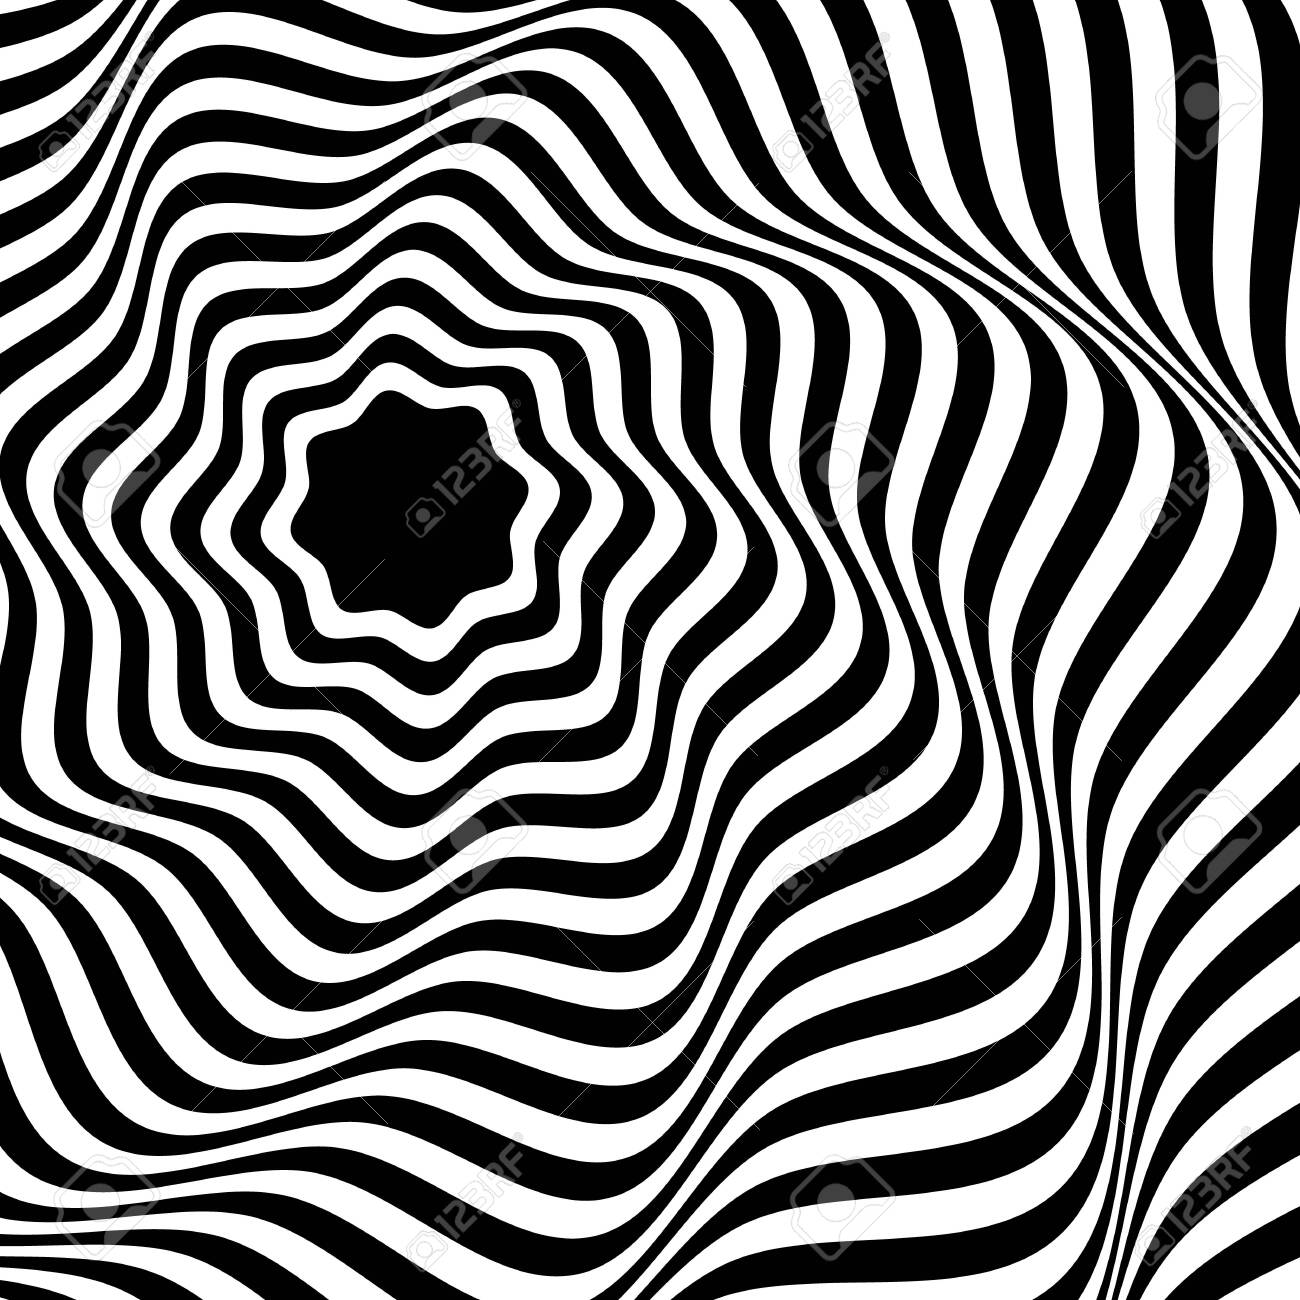 Black And White Abstract Background In The Style Of Pop Art Wallpaper Royalty Free Cliparts Vectors And Stock Illustration Image 146869939